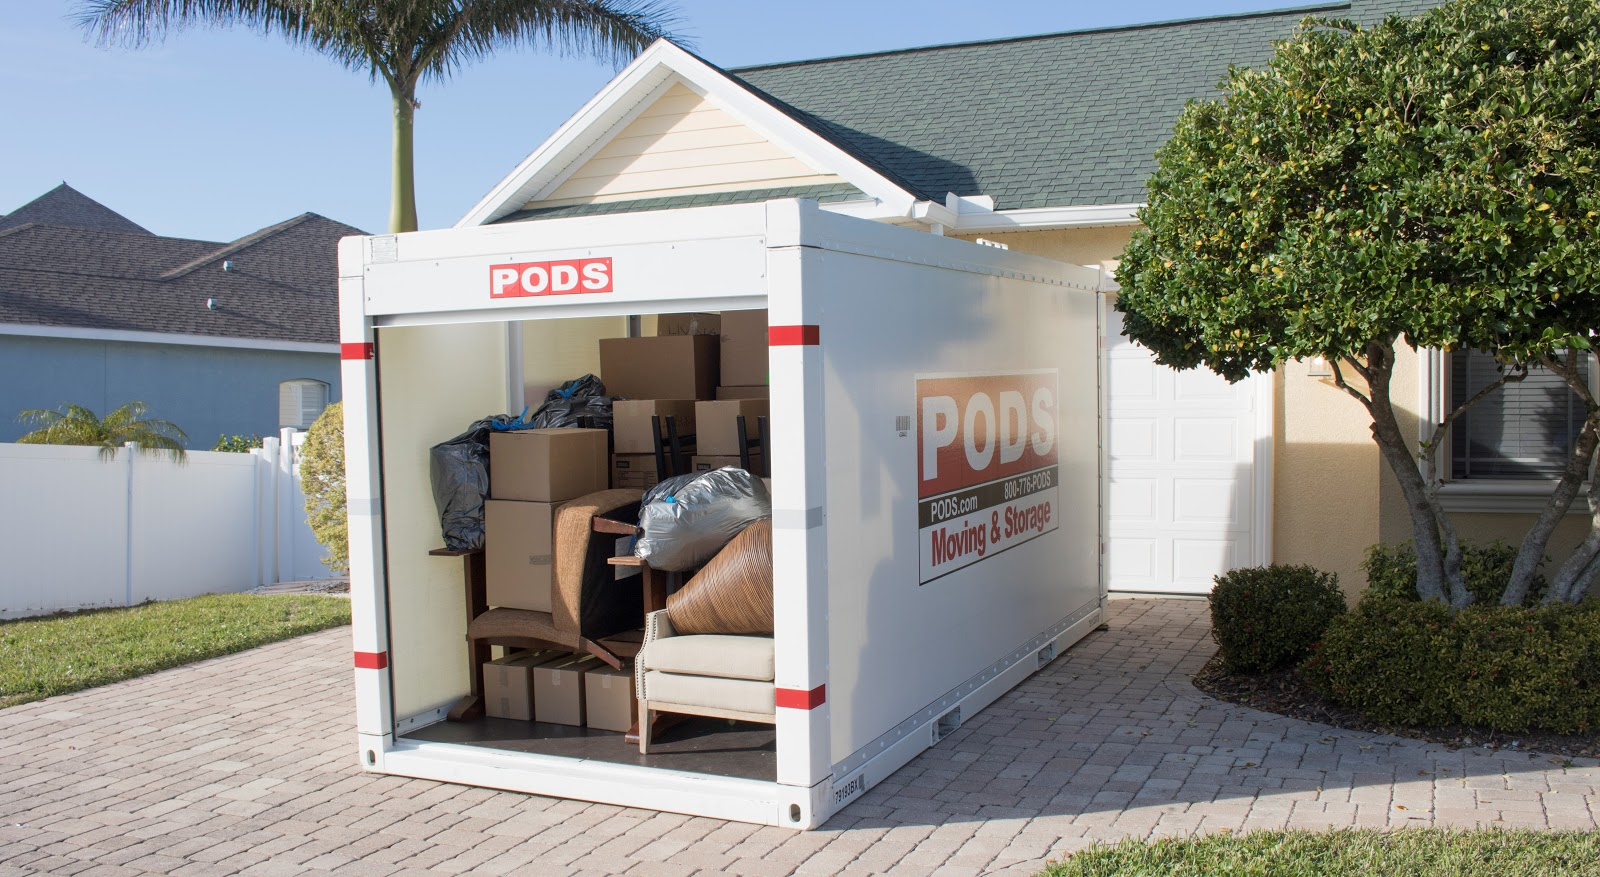 PODS portable storage container loaded in a driveway